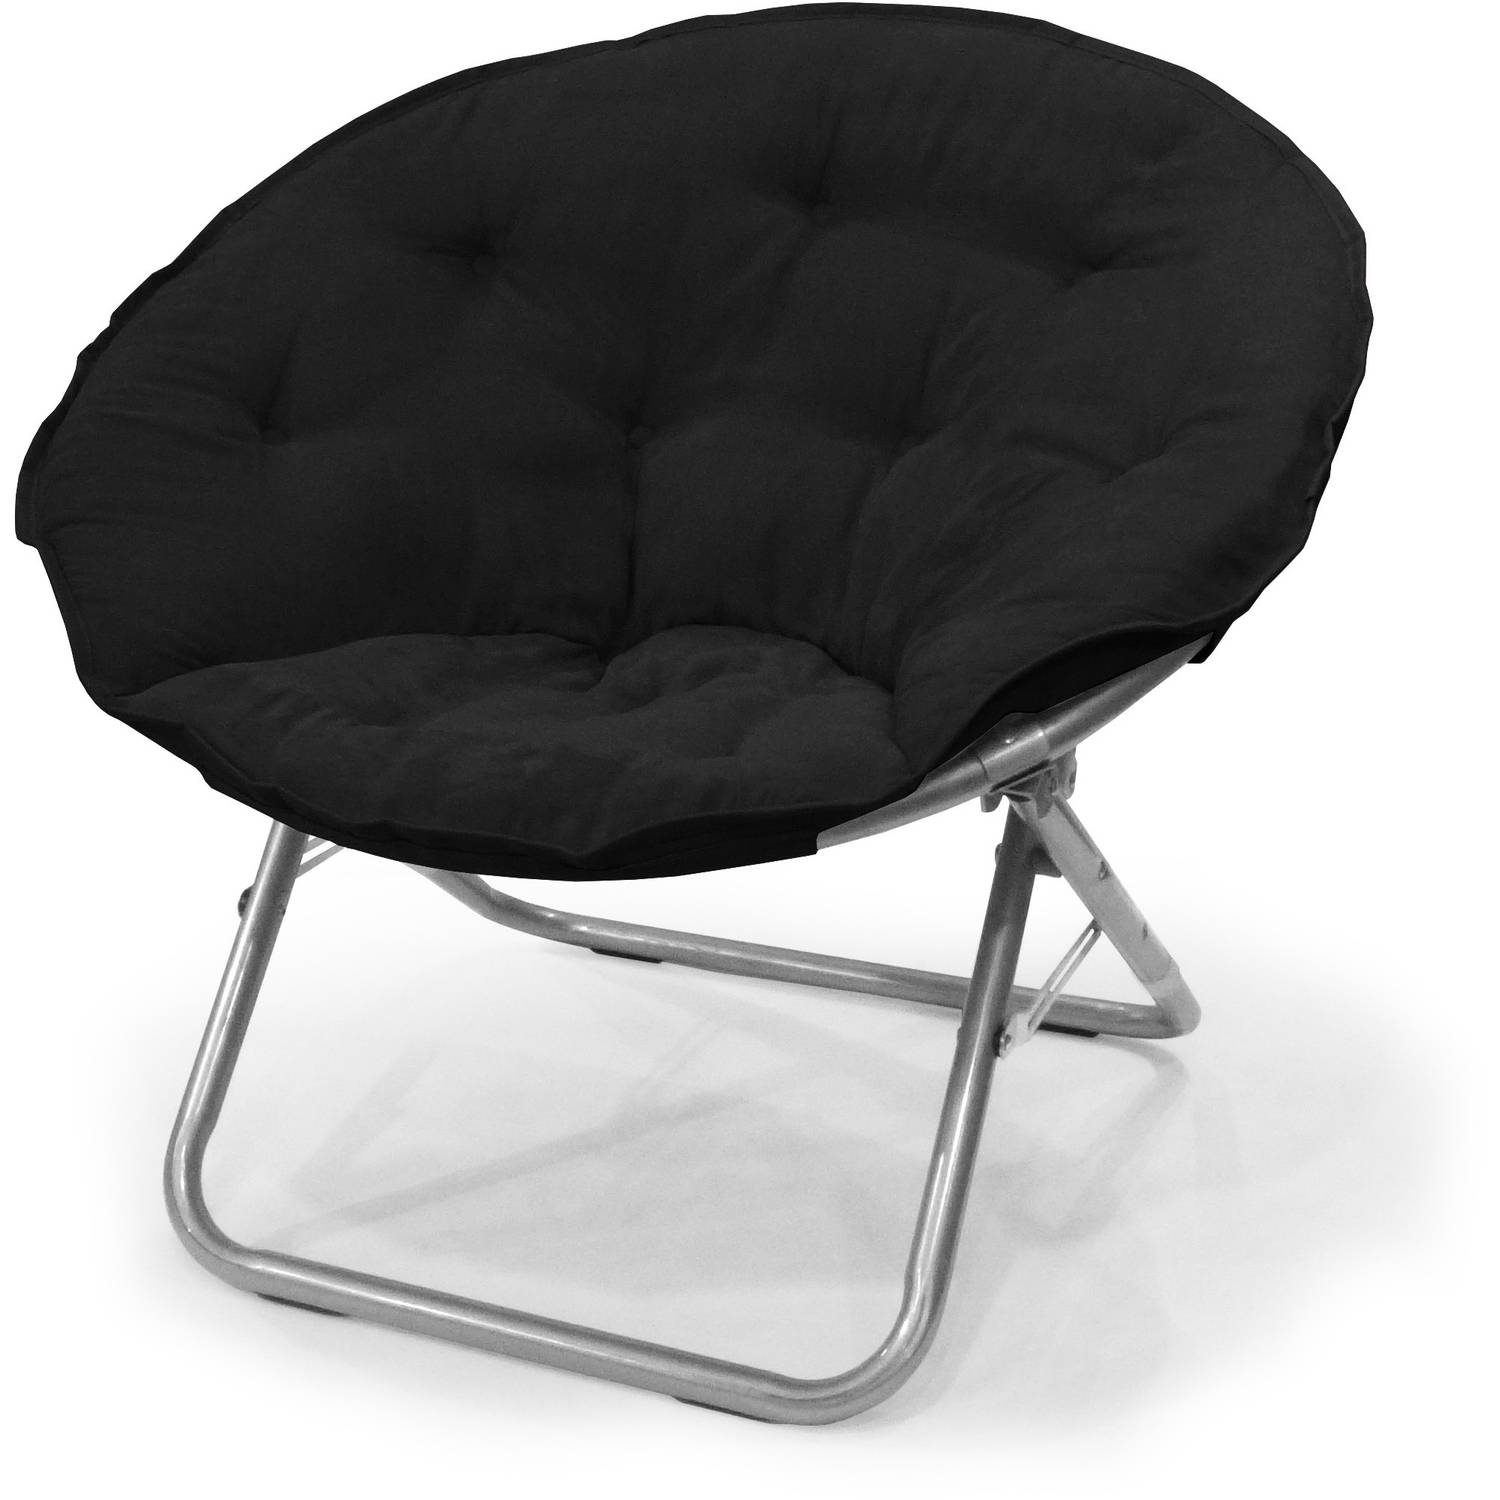 Mainstays Large Microsuede Saucer Chair, Multiple Colors   Walmart.com